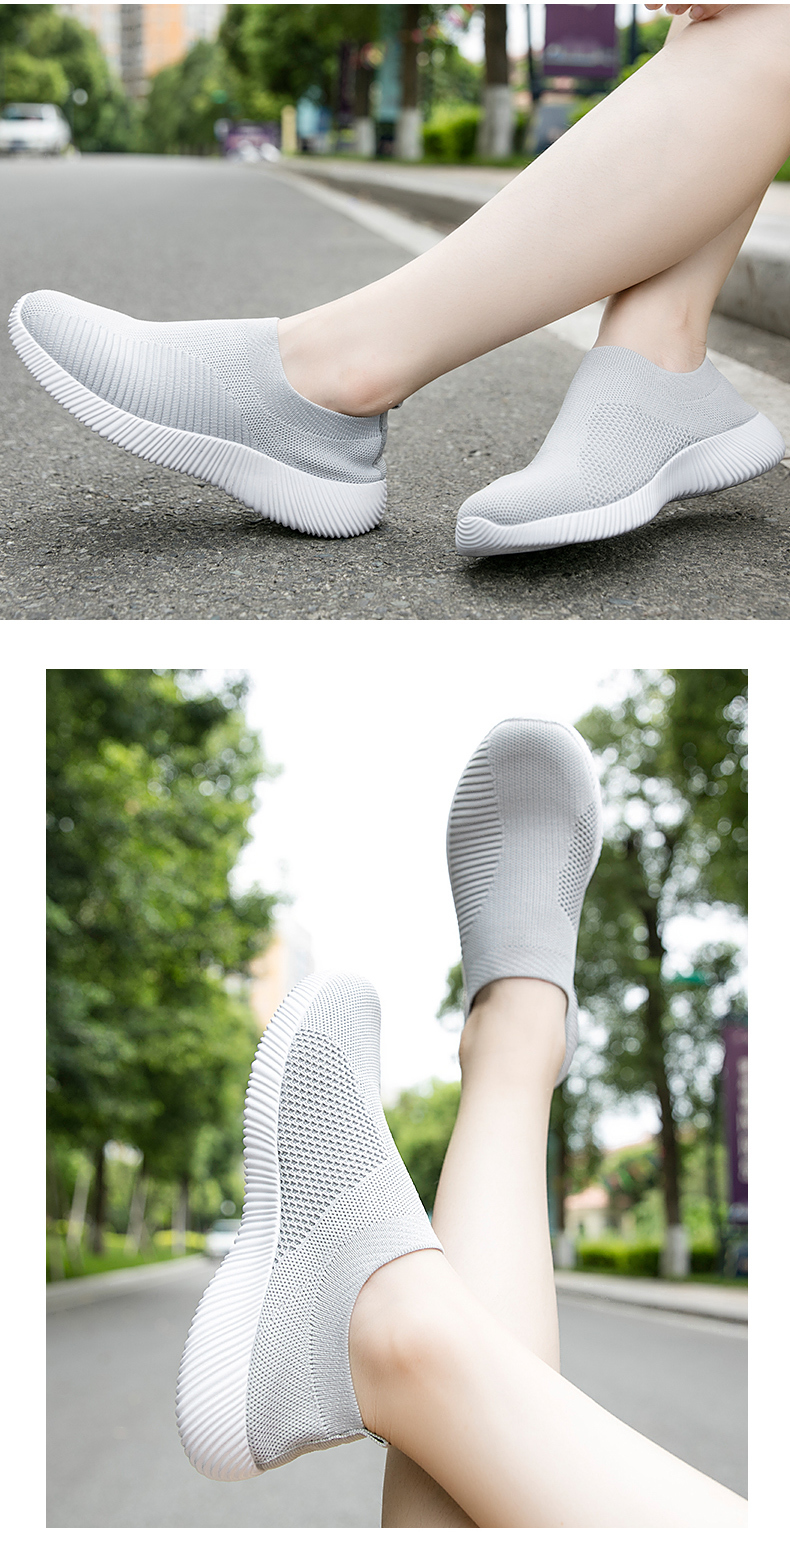 Slip On Flying Knit Women Fashion Sneakers Breathable Flat Heel Casual Shoes Round Toe Low Top Women Shoes XU034 (5)